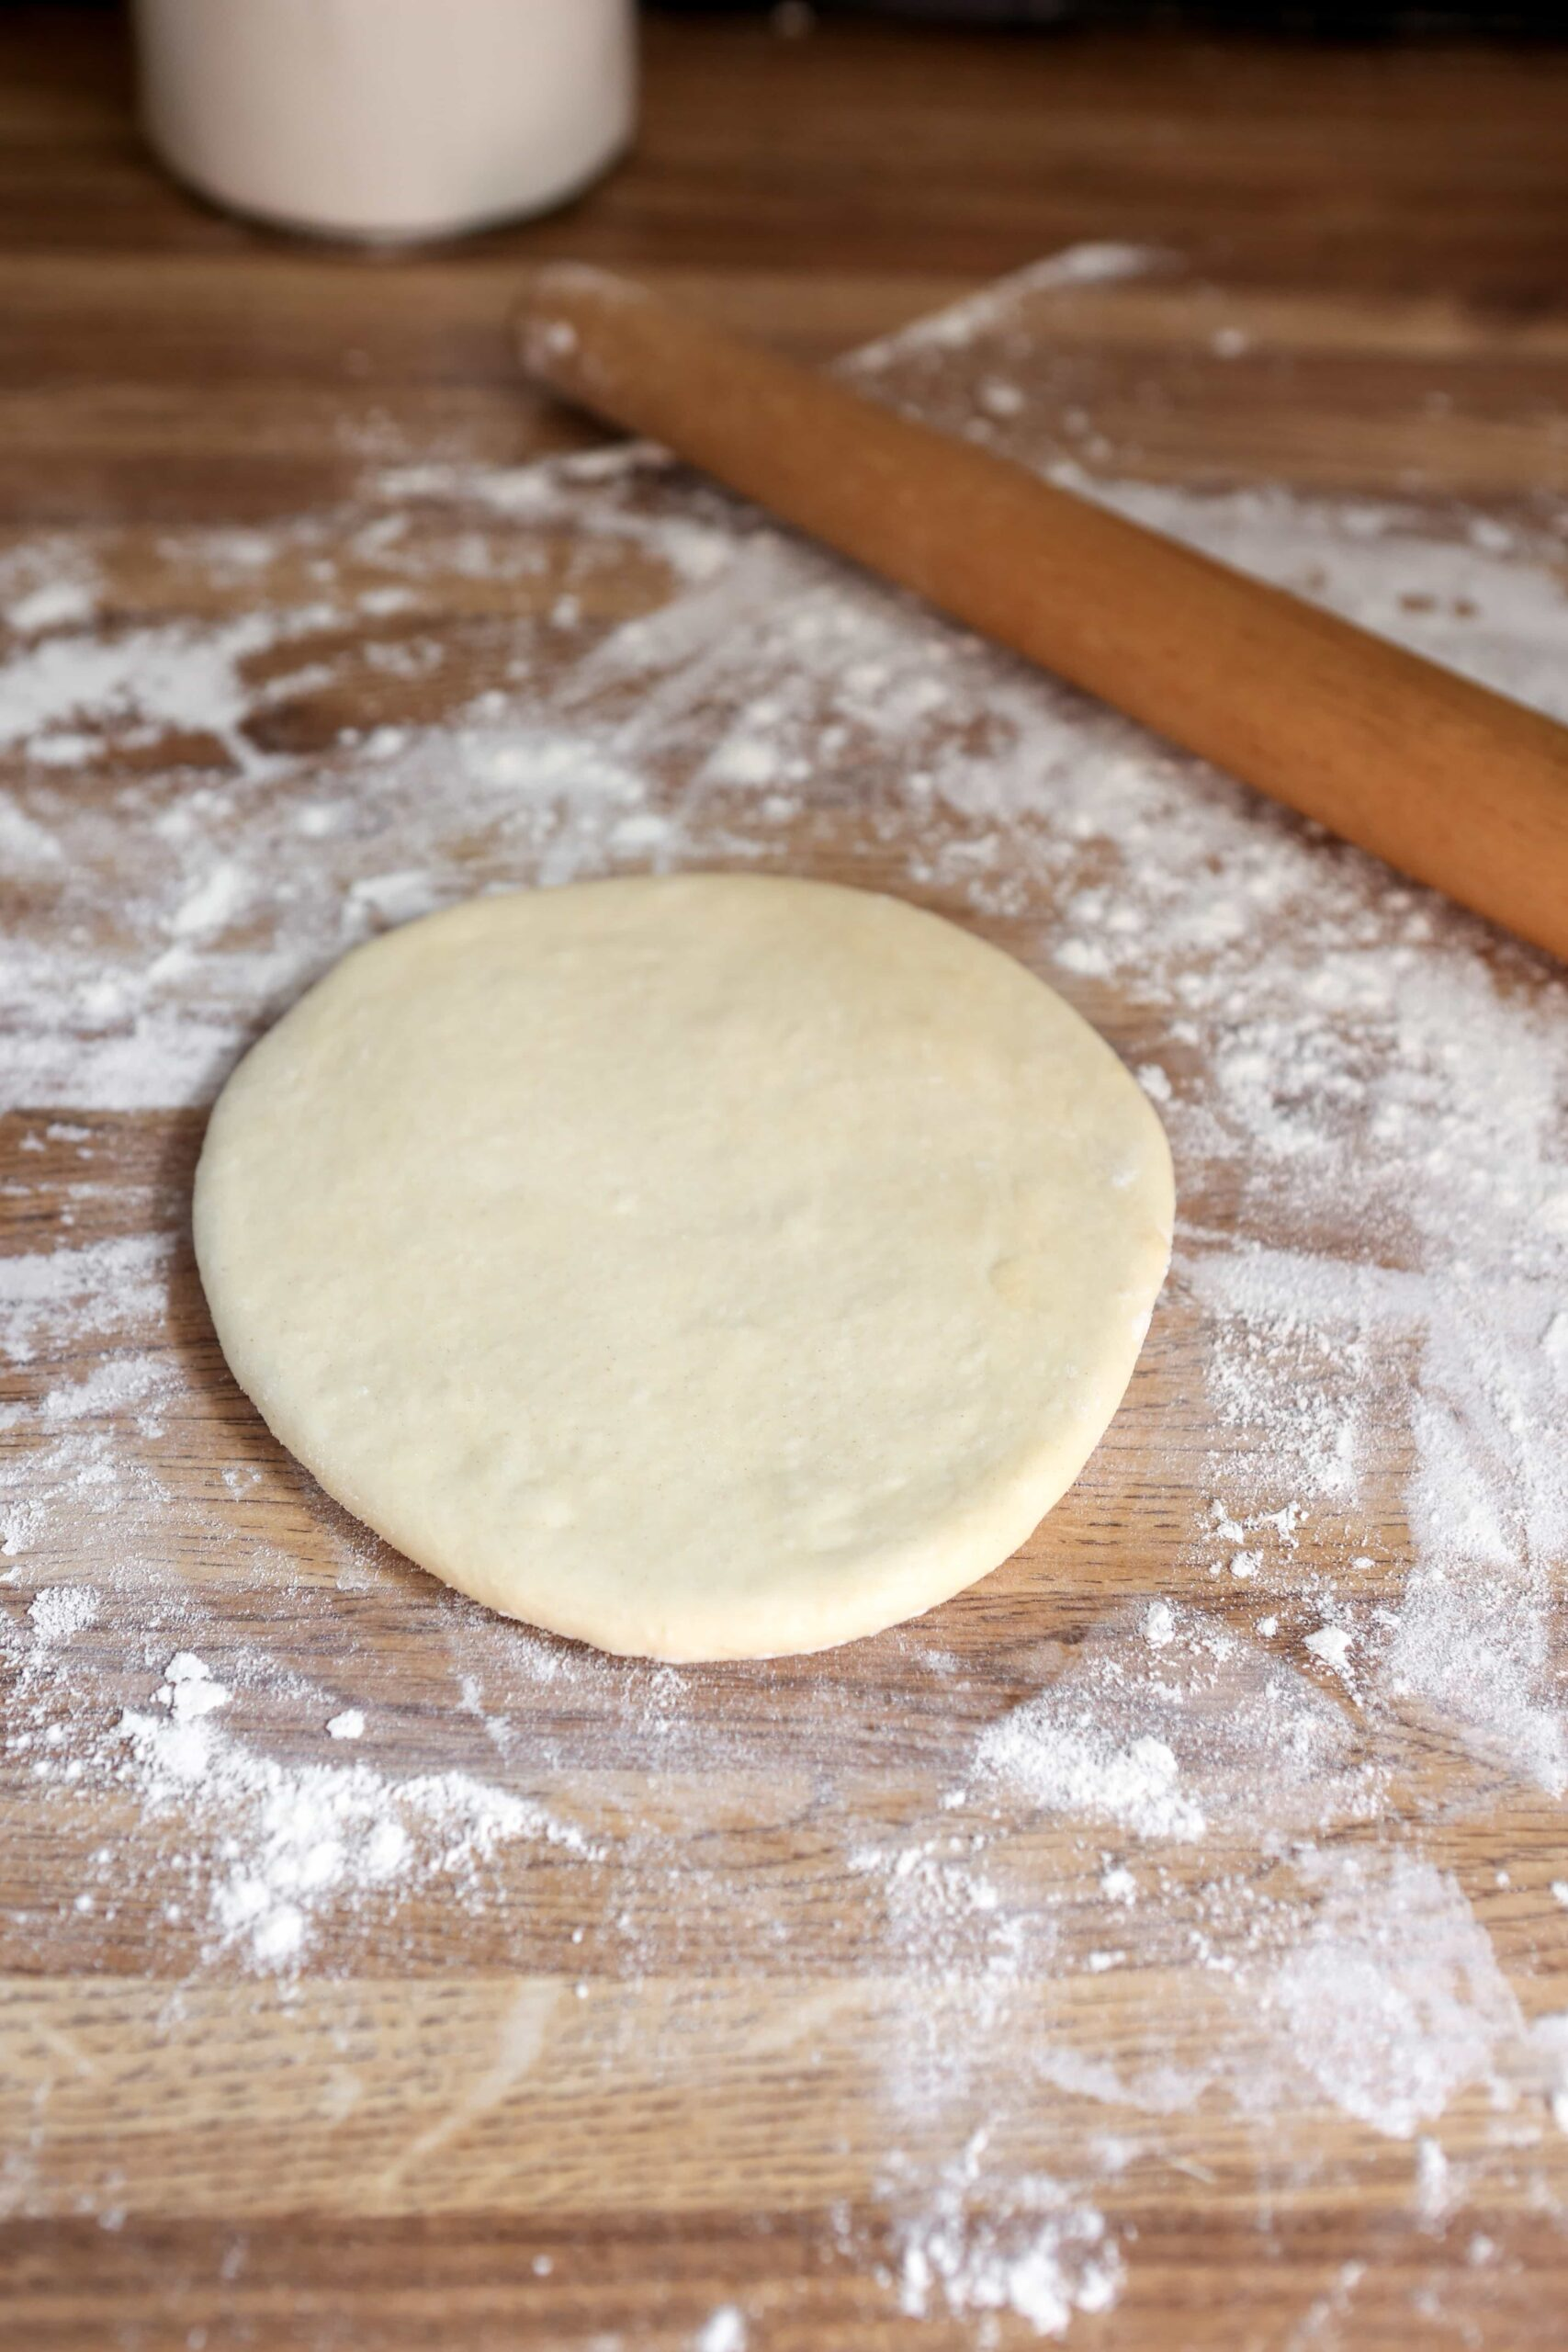 naan dough partially rolled out on floured surface